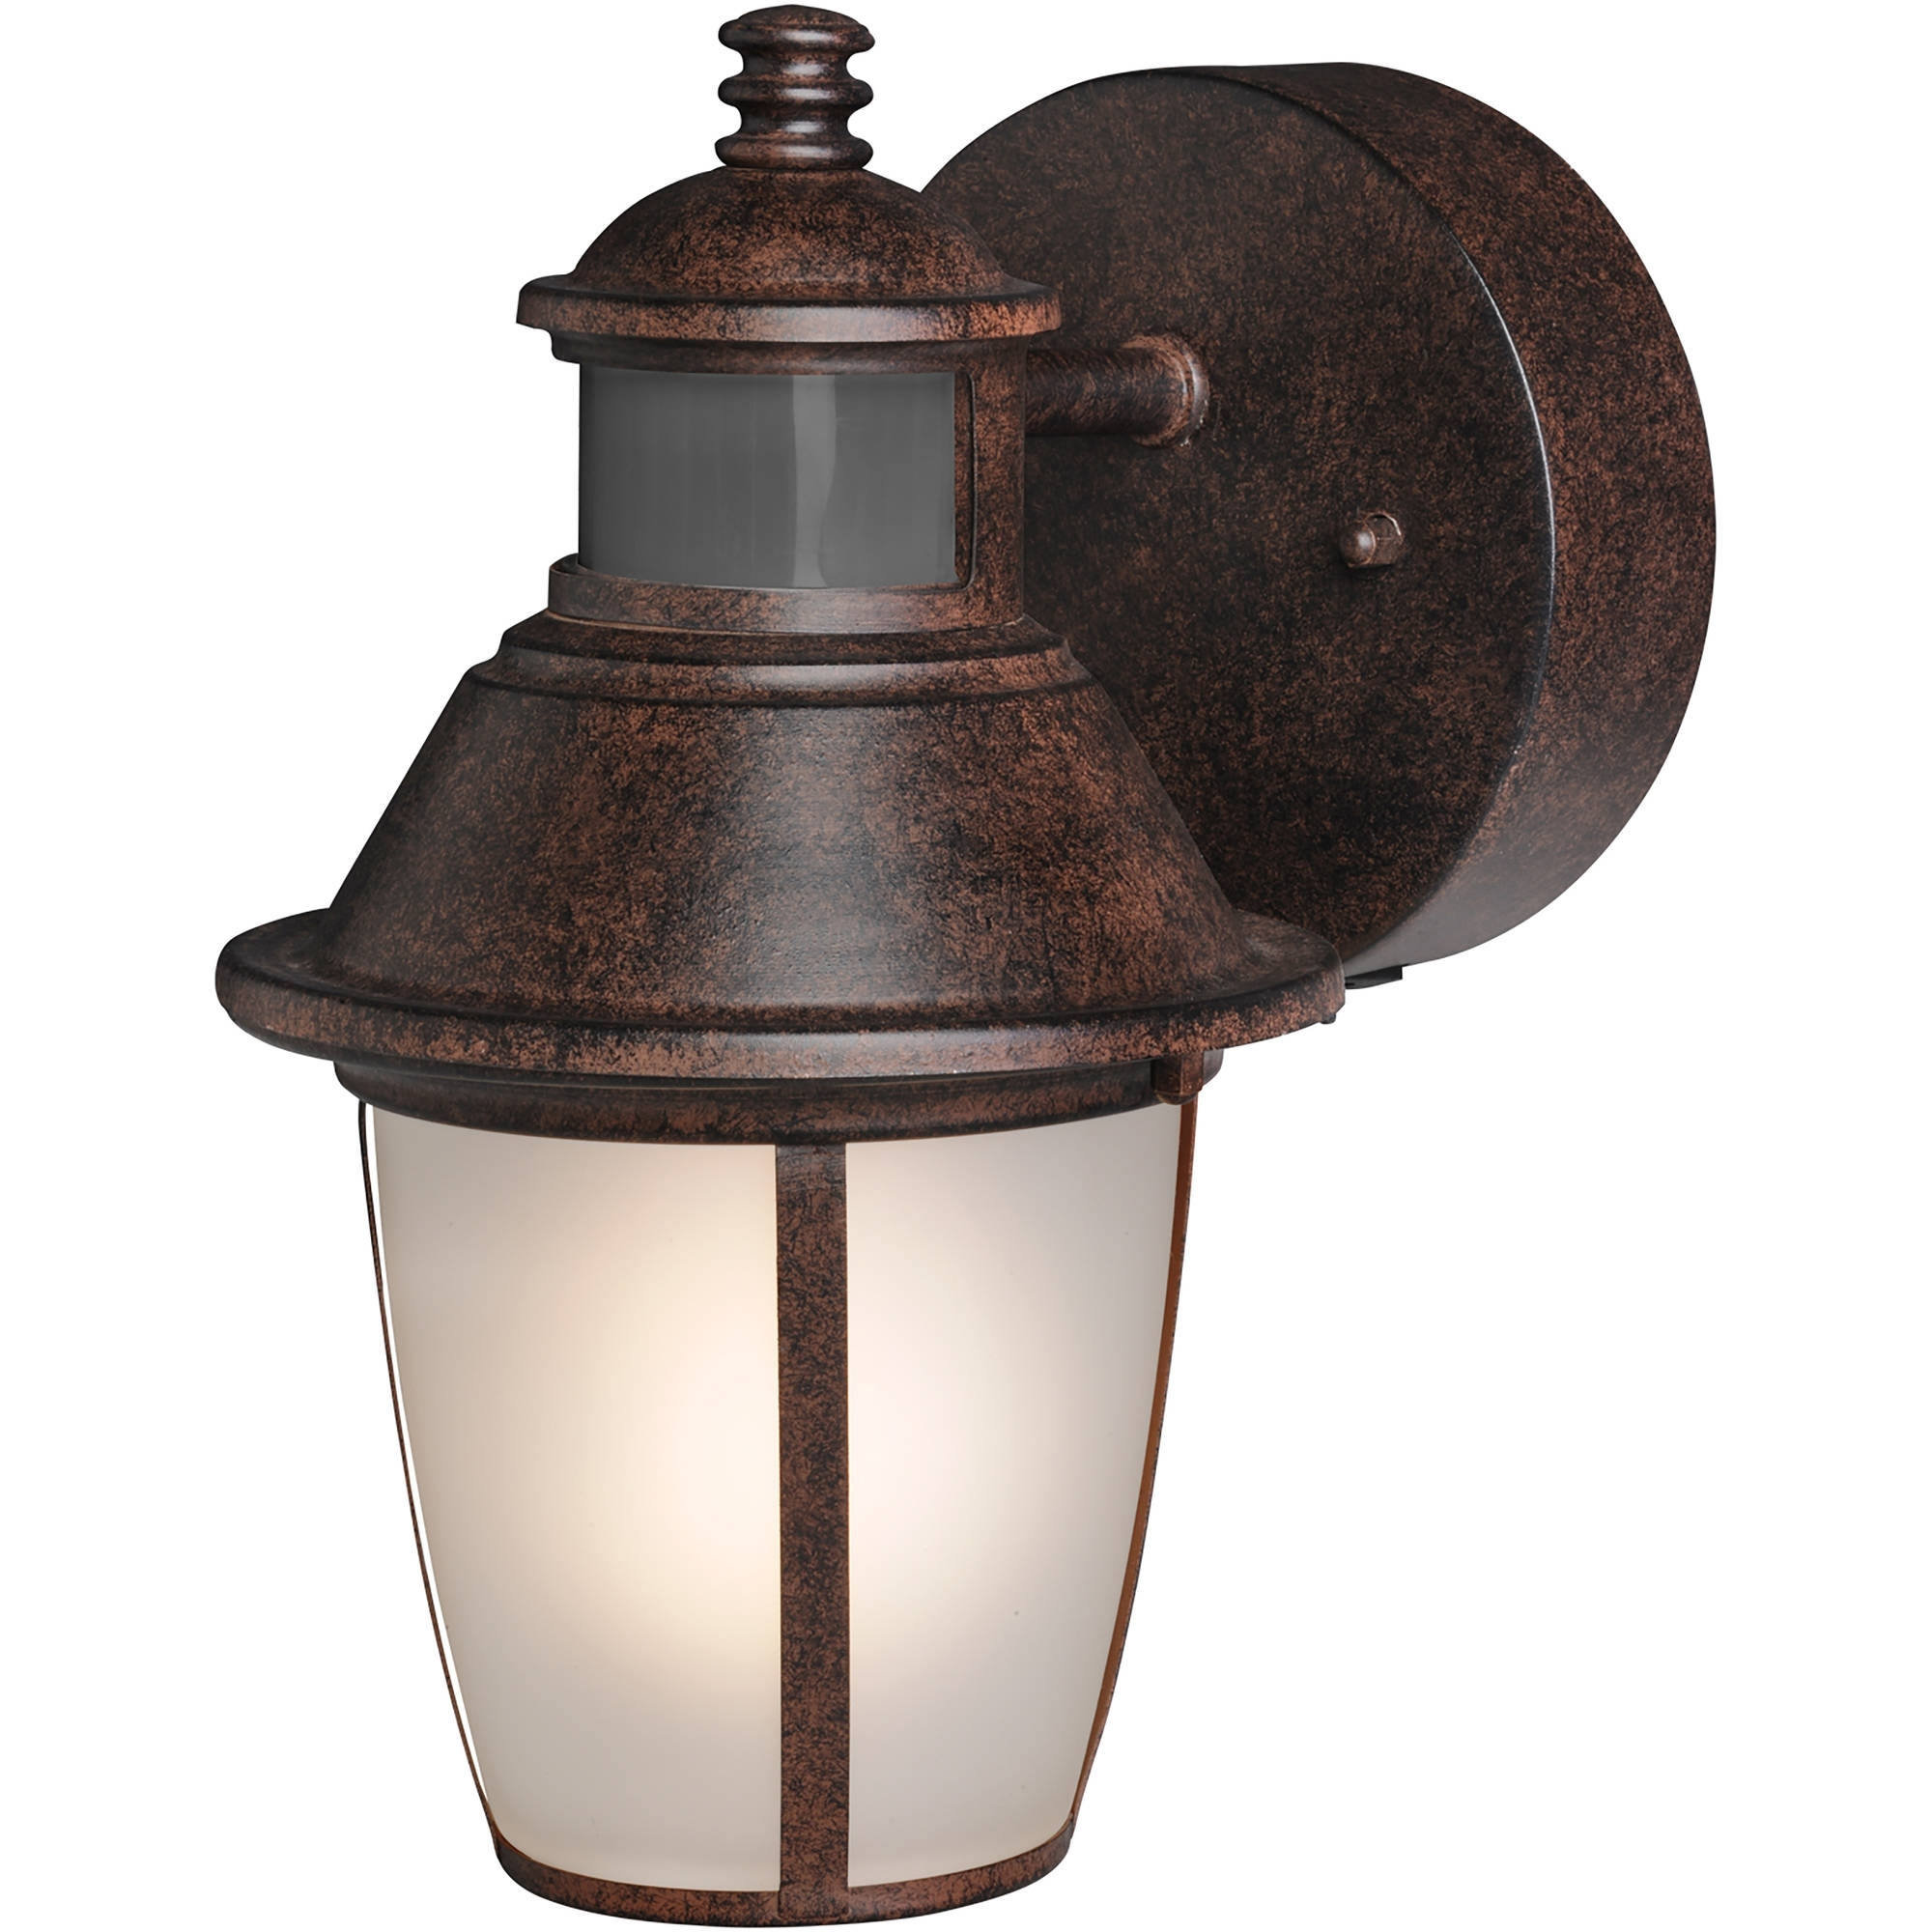 Well Known Outdoor Wall Lighting With Motion Activated Pertaining To Brink's Led Outdoor Wall Lantern Motion Security Light, Bronze (View 19 of 20)